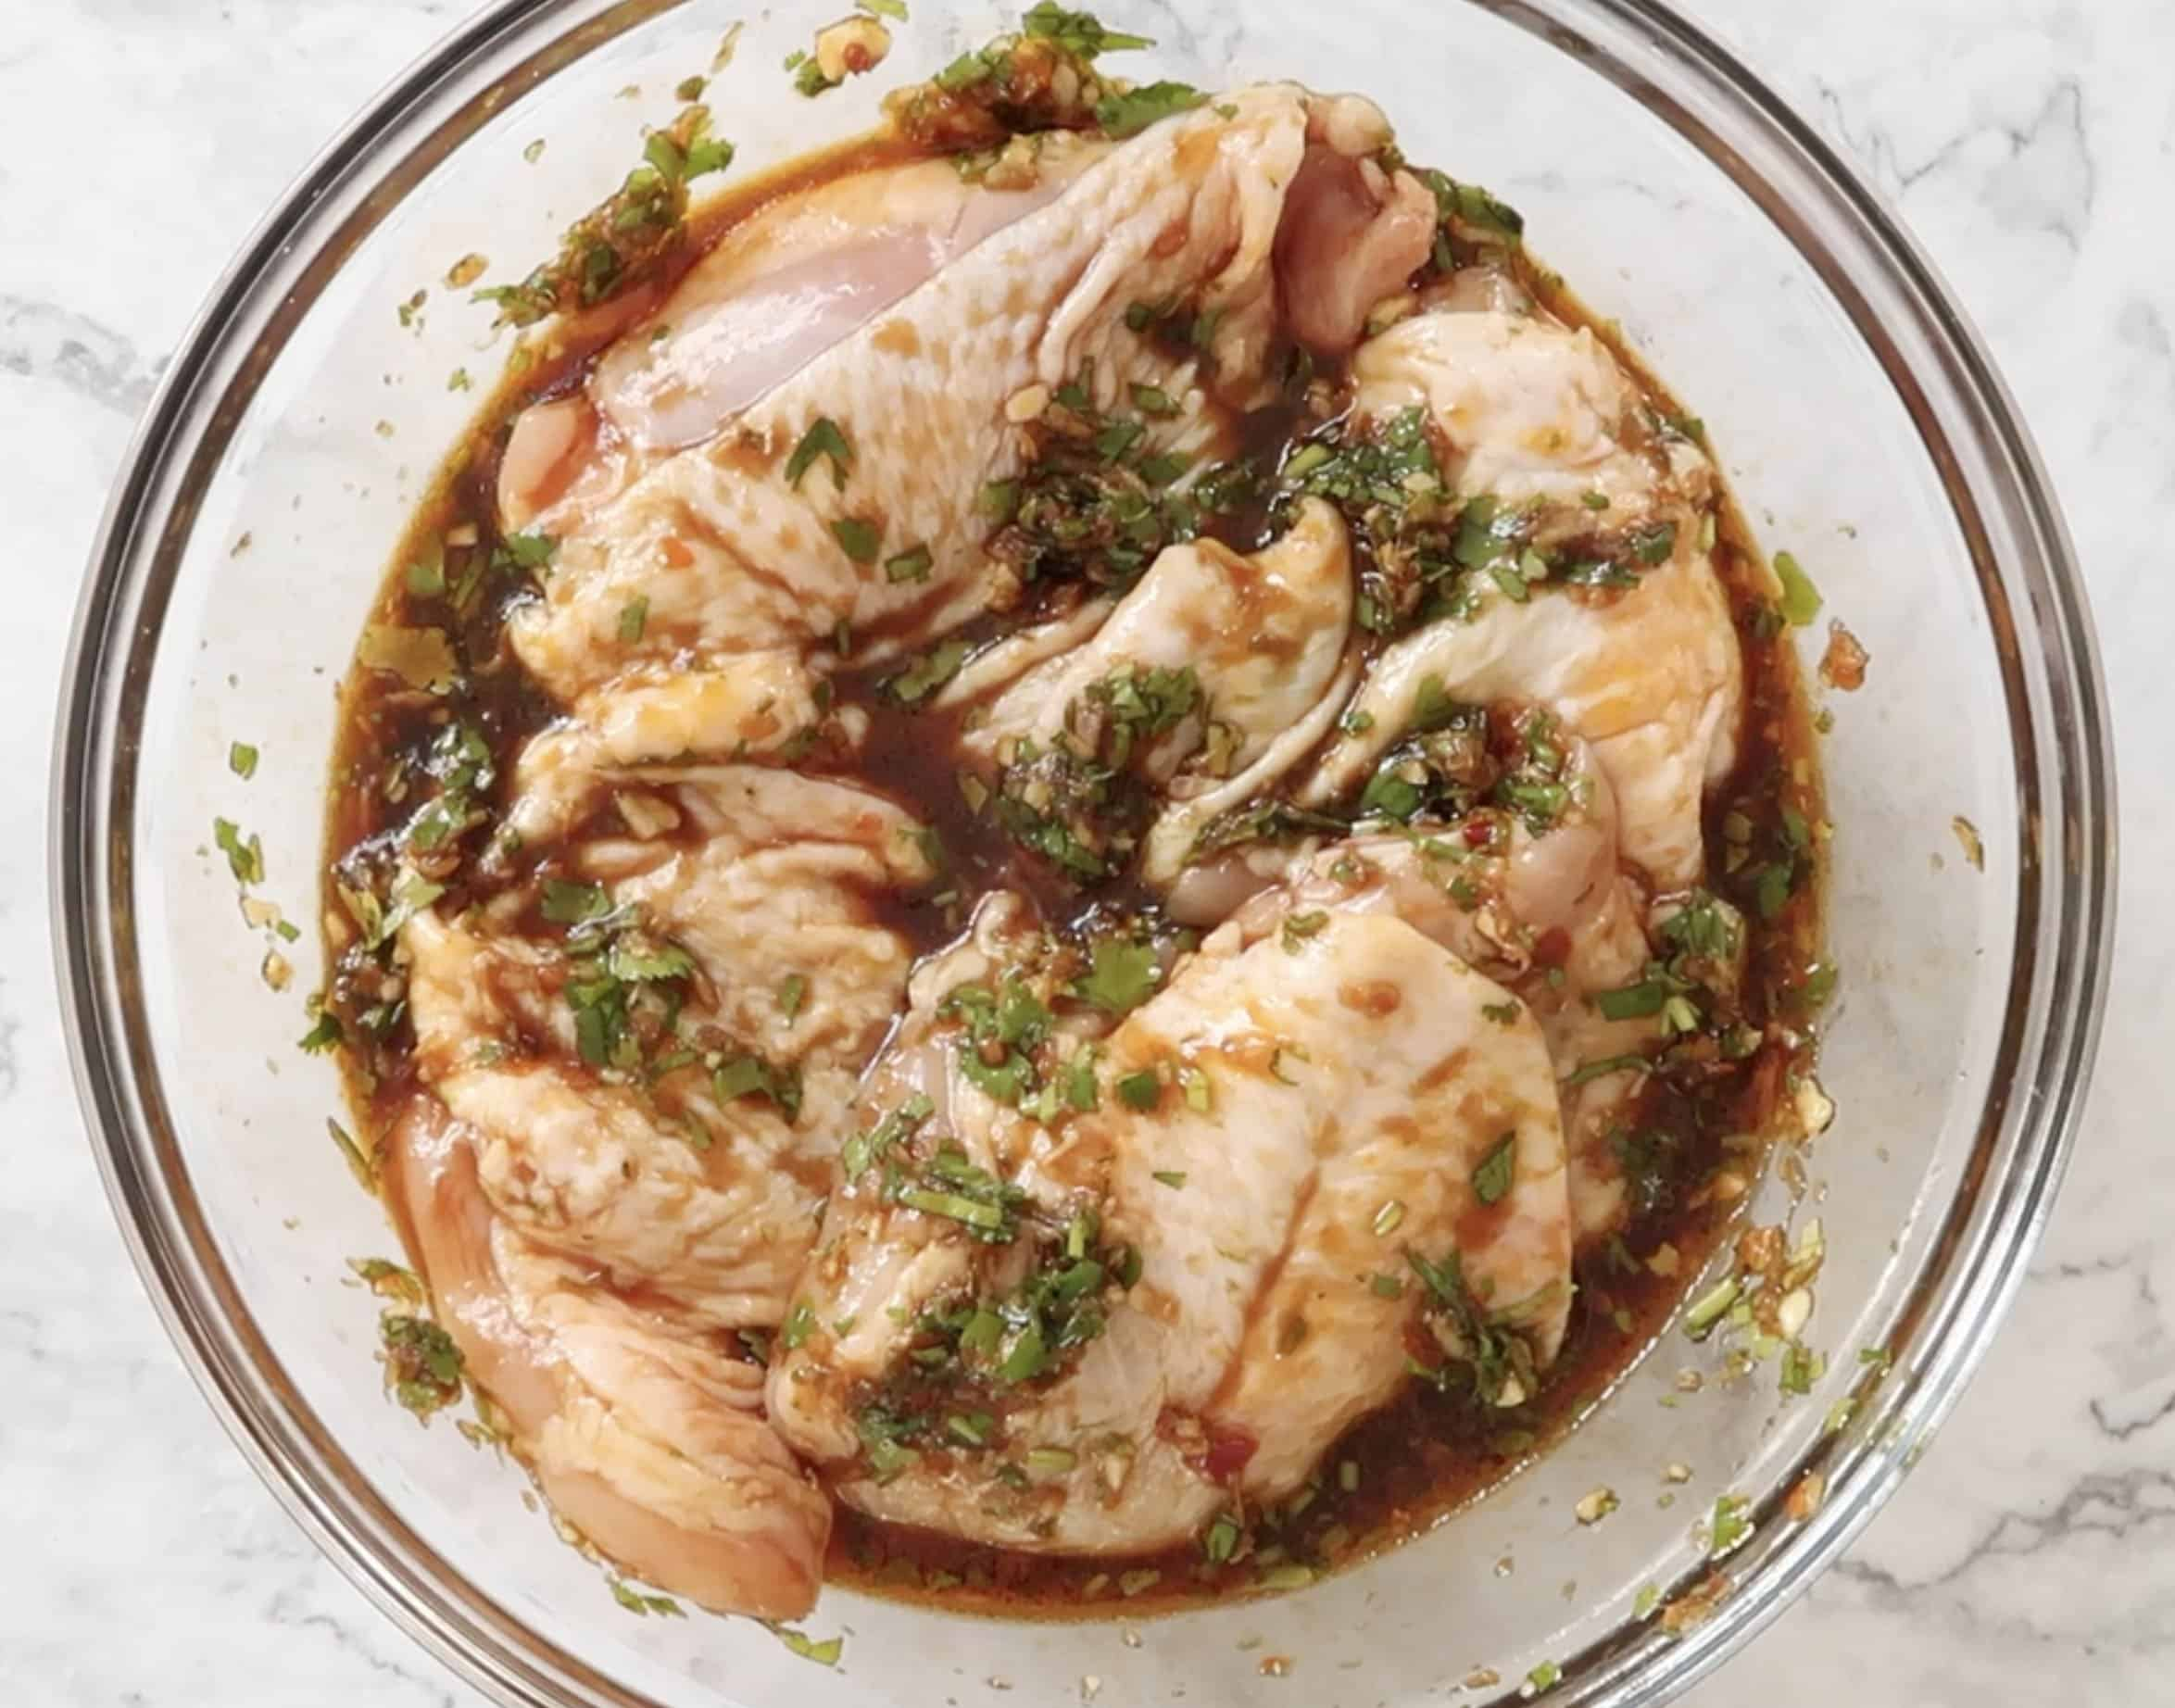 chicken thighs marinated in a glass bowl to make Vietnamese baked chicken thighs